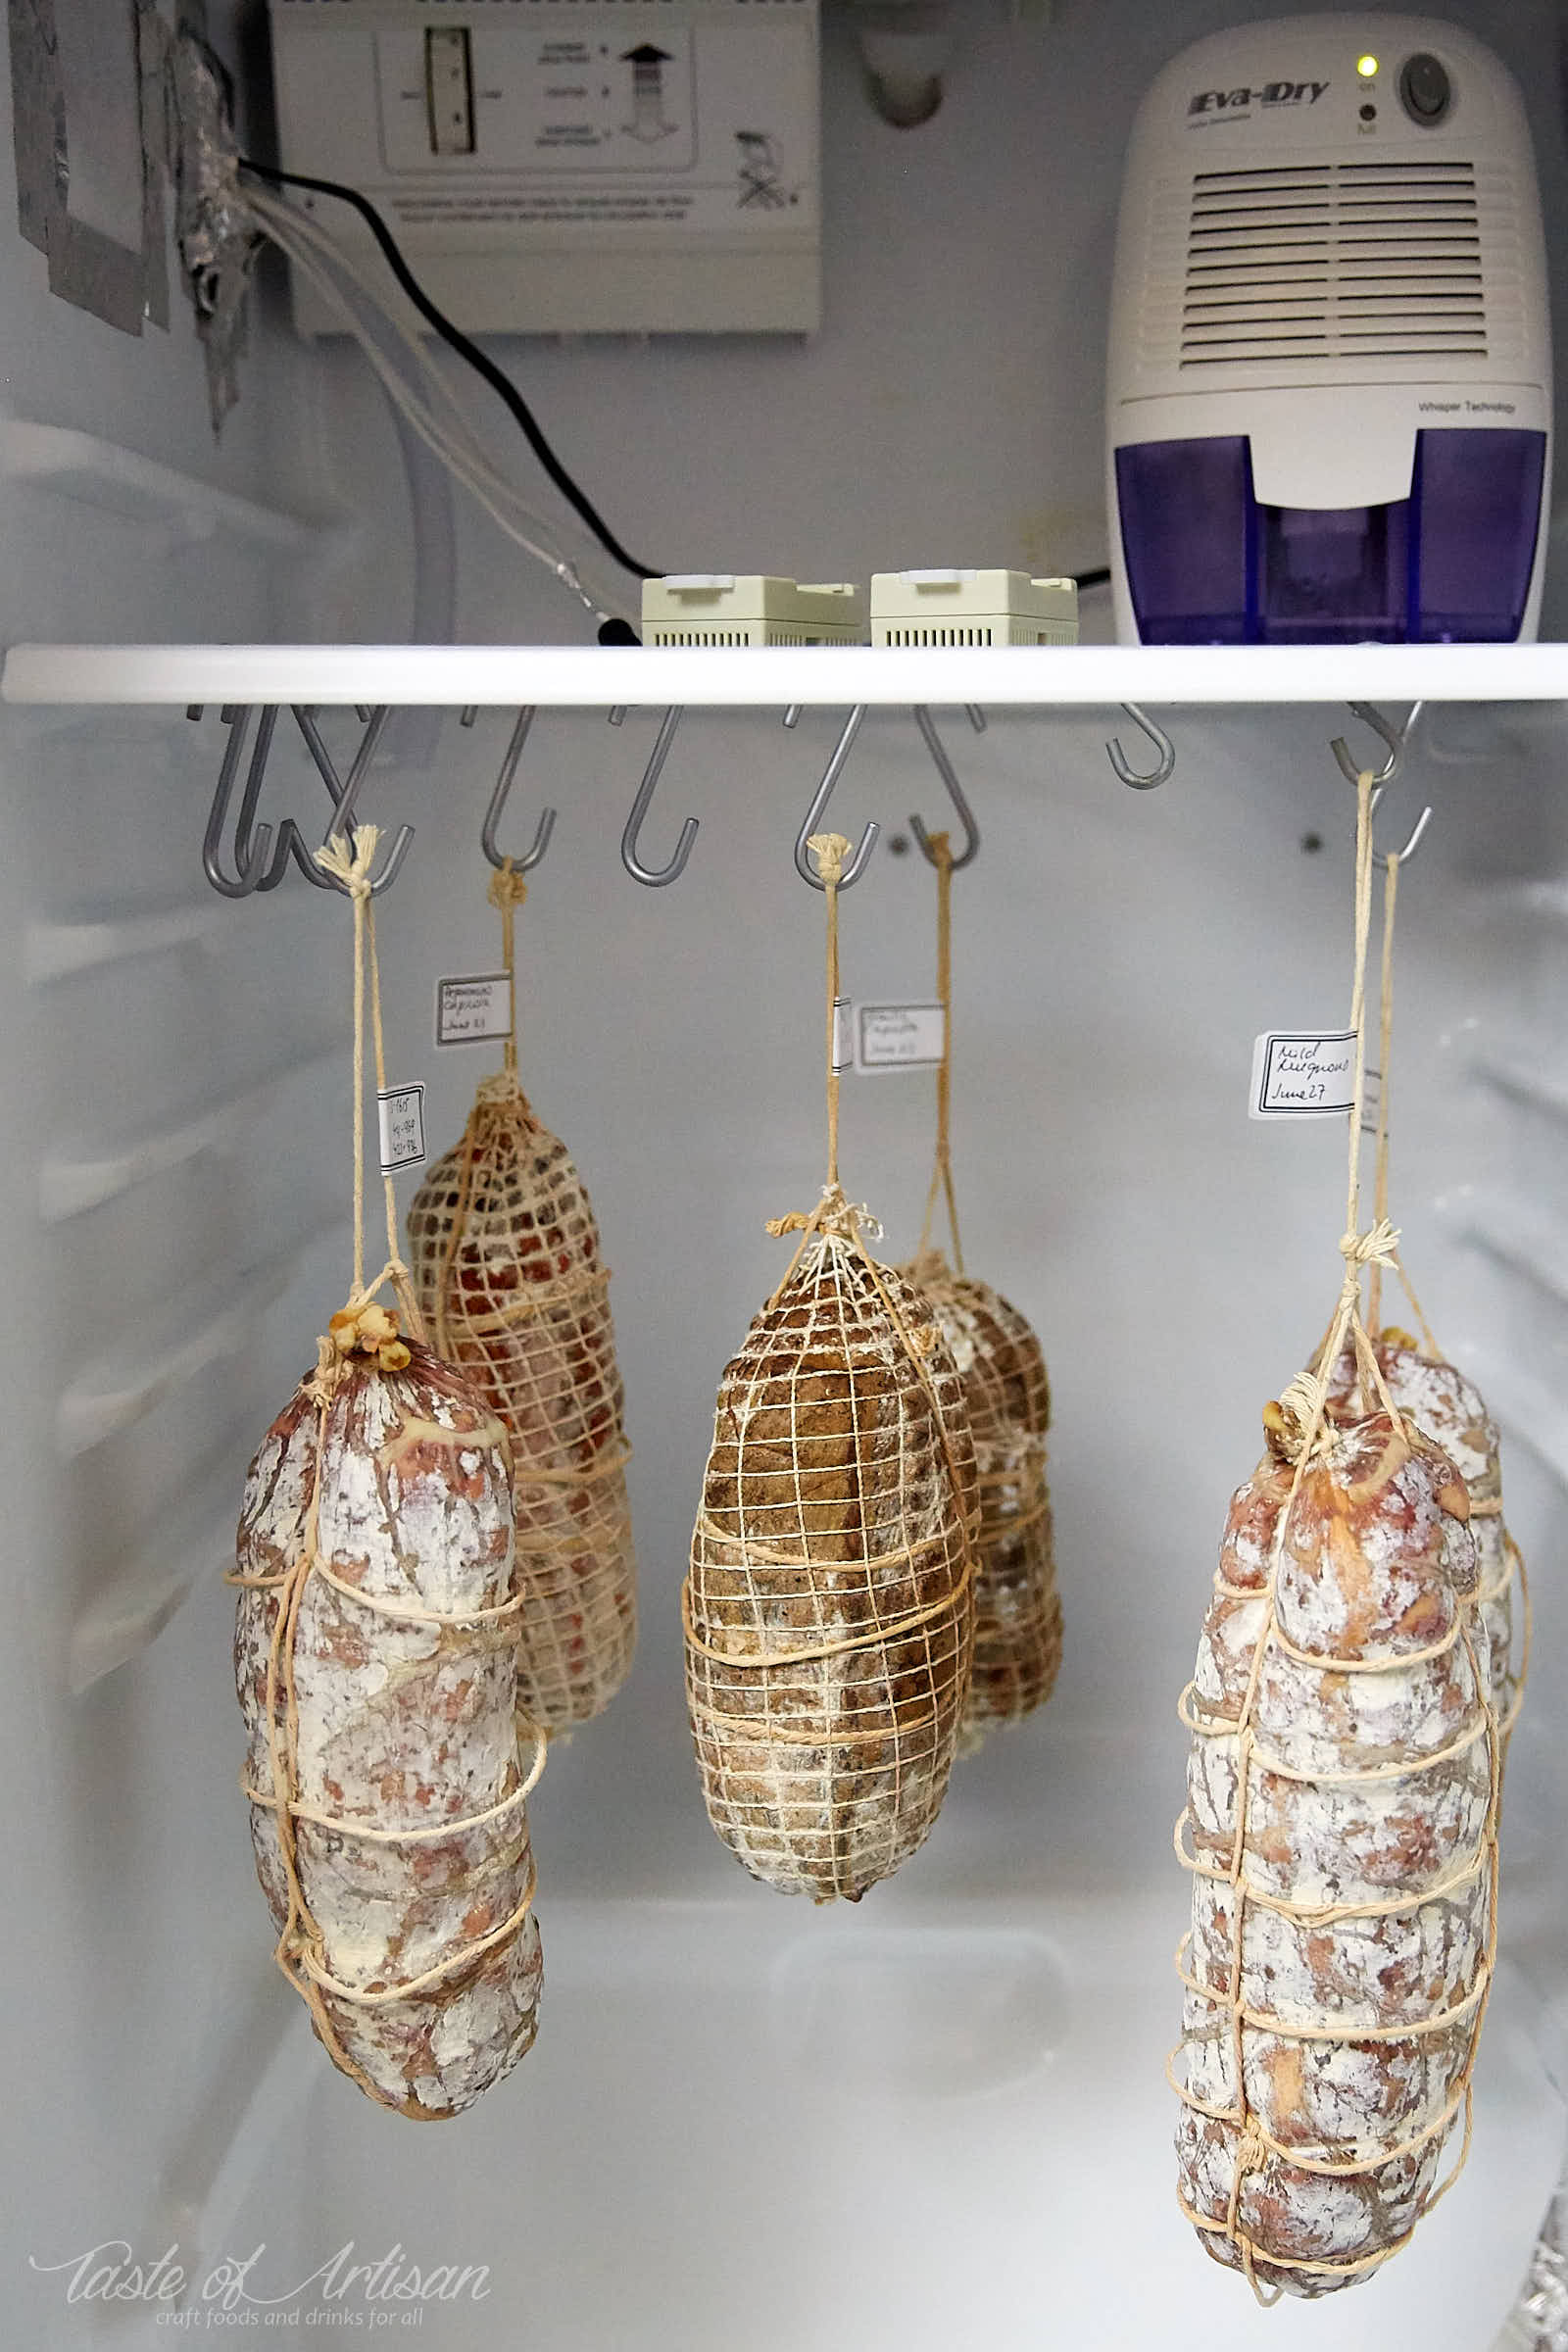 Meat Curing Chamber at home. This meat curing chamber is advanced enough to allow full control of temperature and humidity, which allows consistent and predictable results. | Taste of Artisan